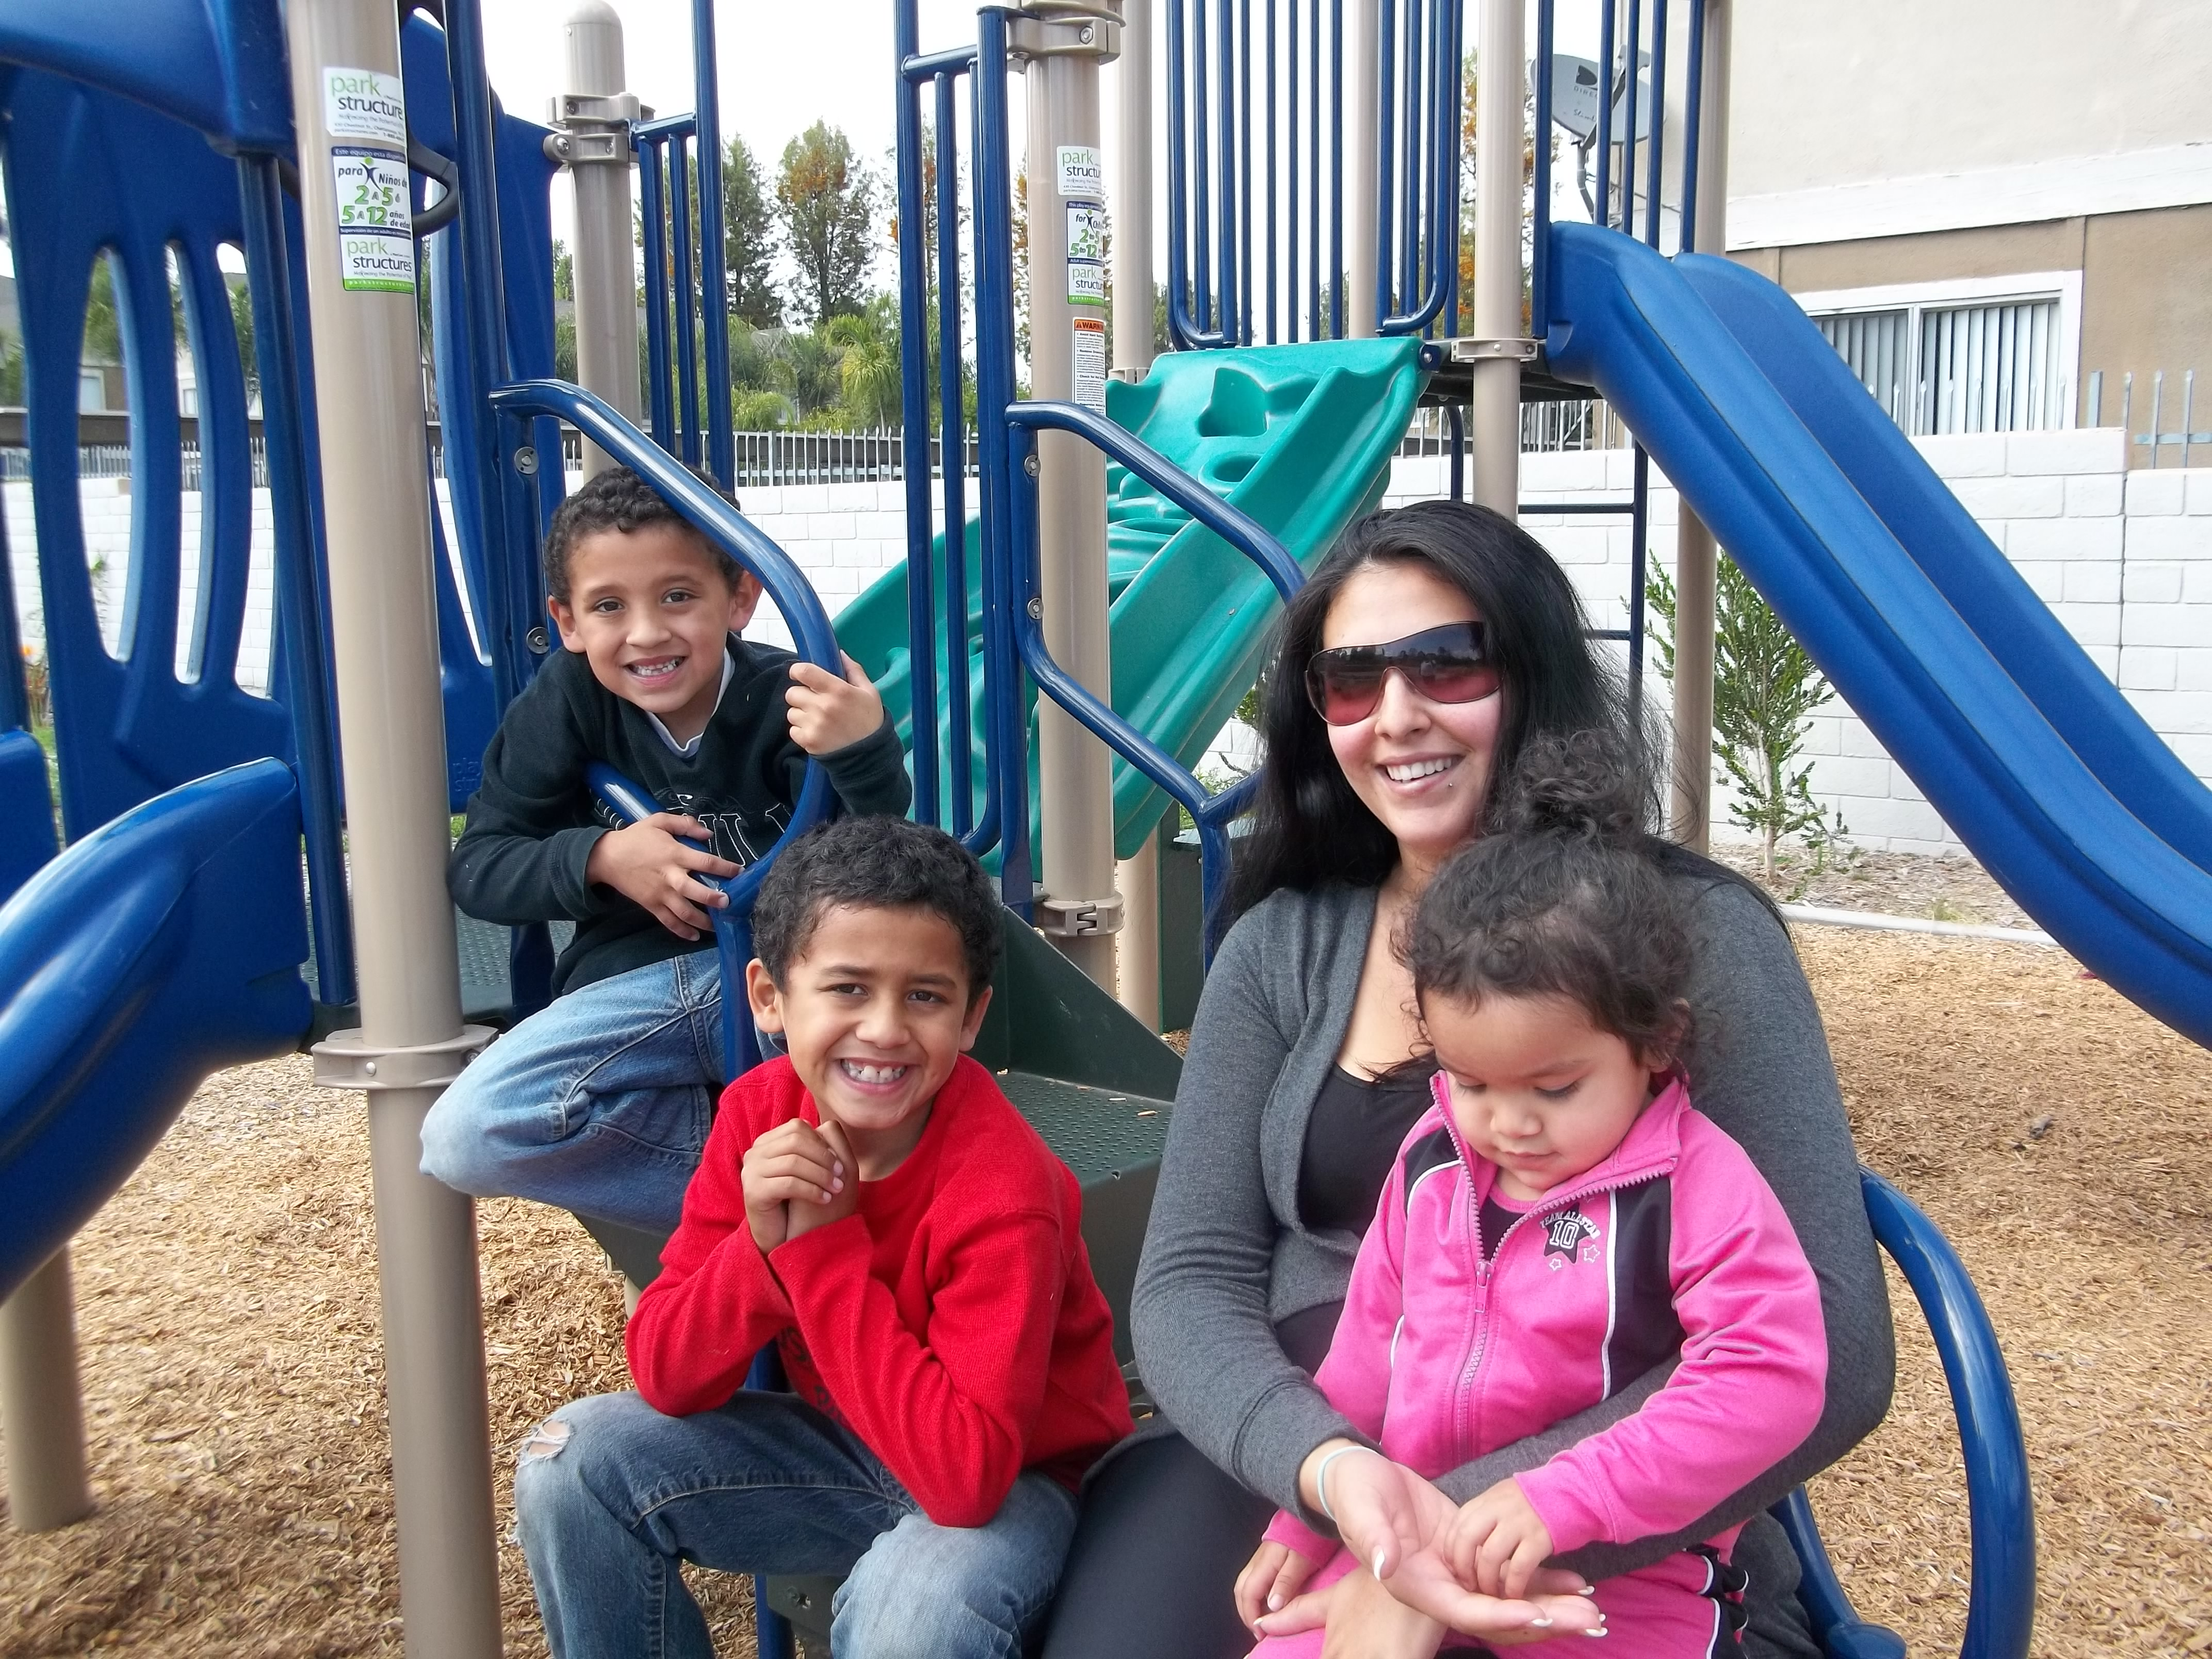 """I truly love living here.  The kids playground and computer room are very nice.""